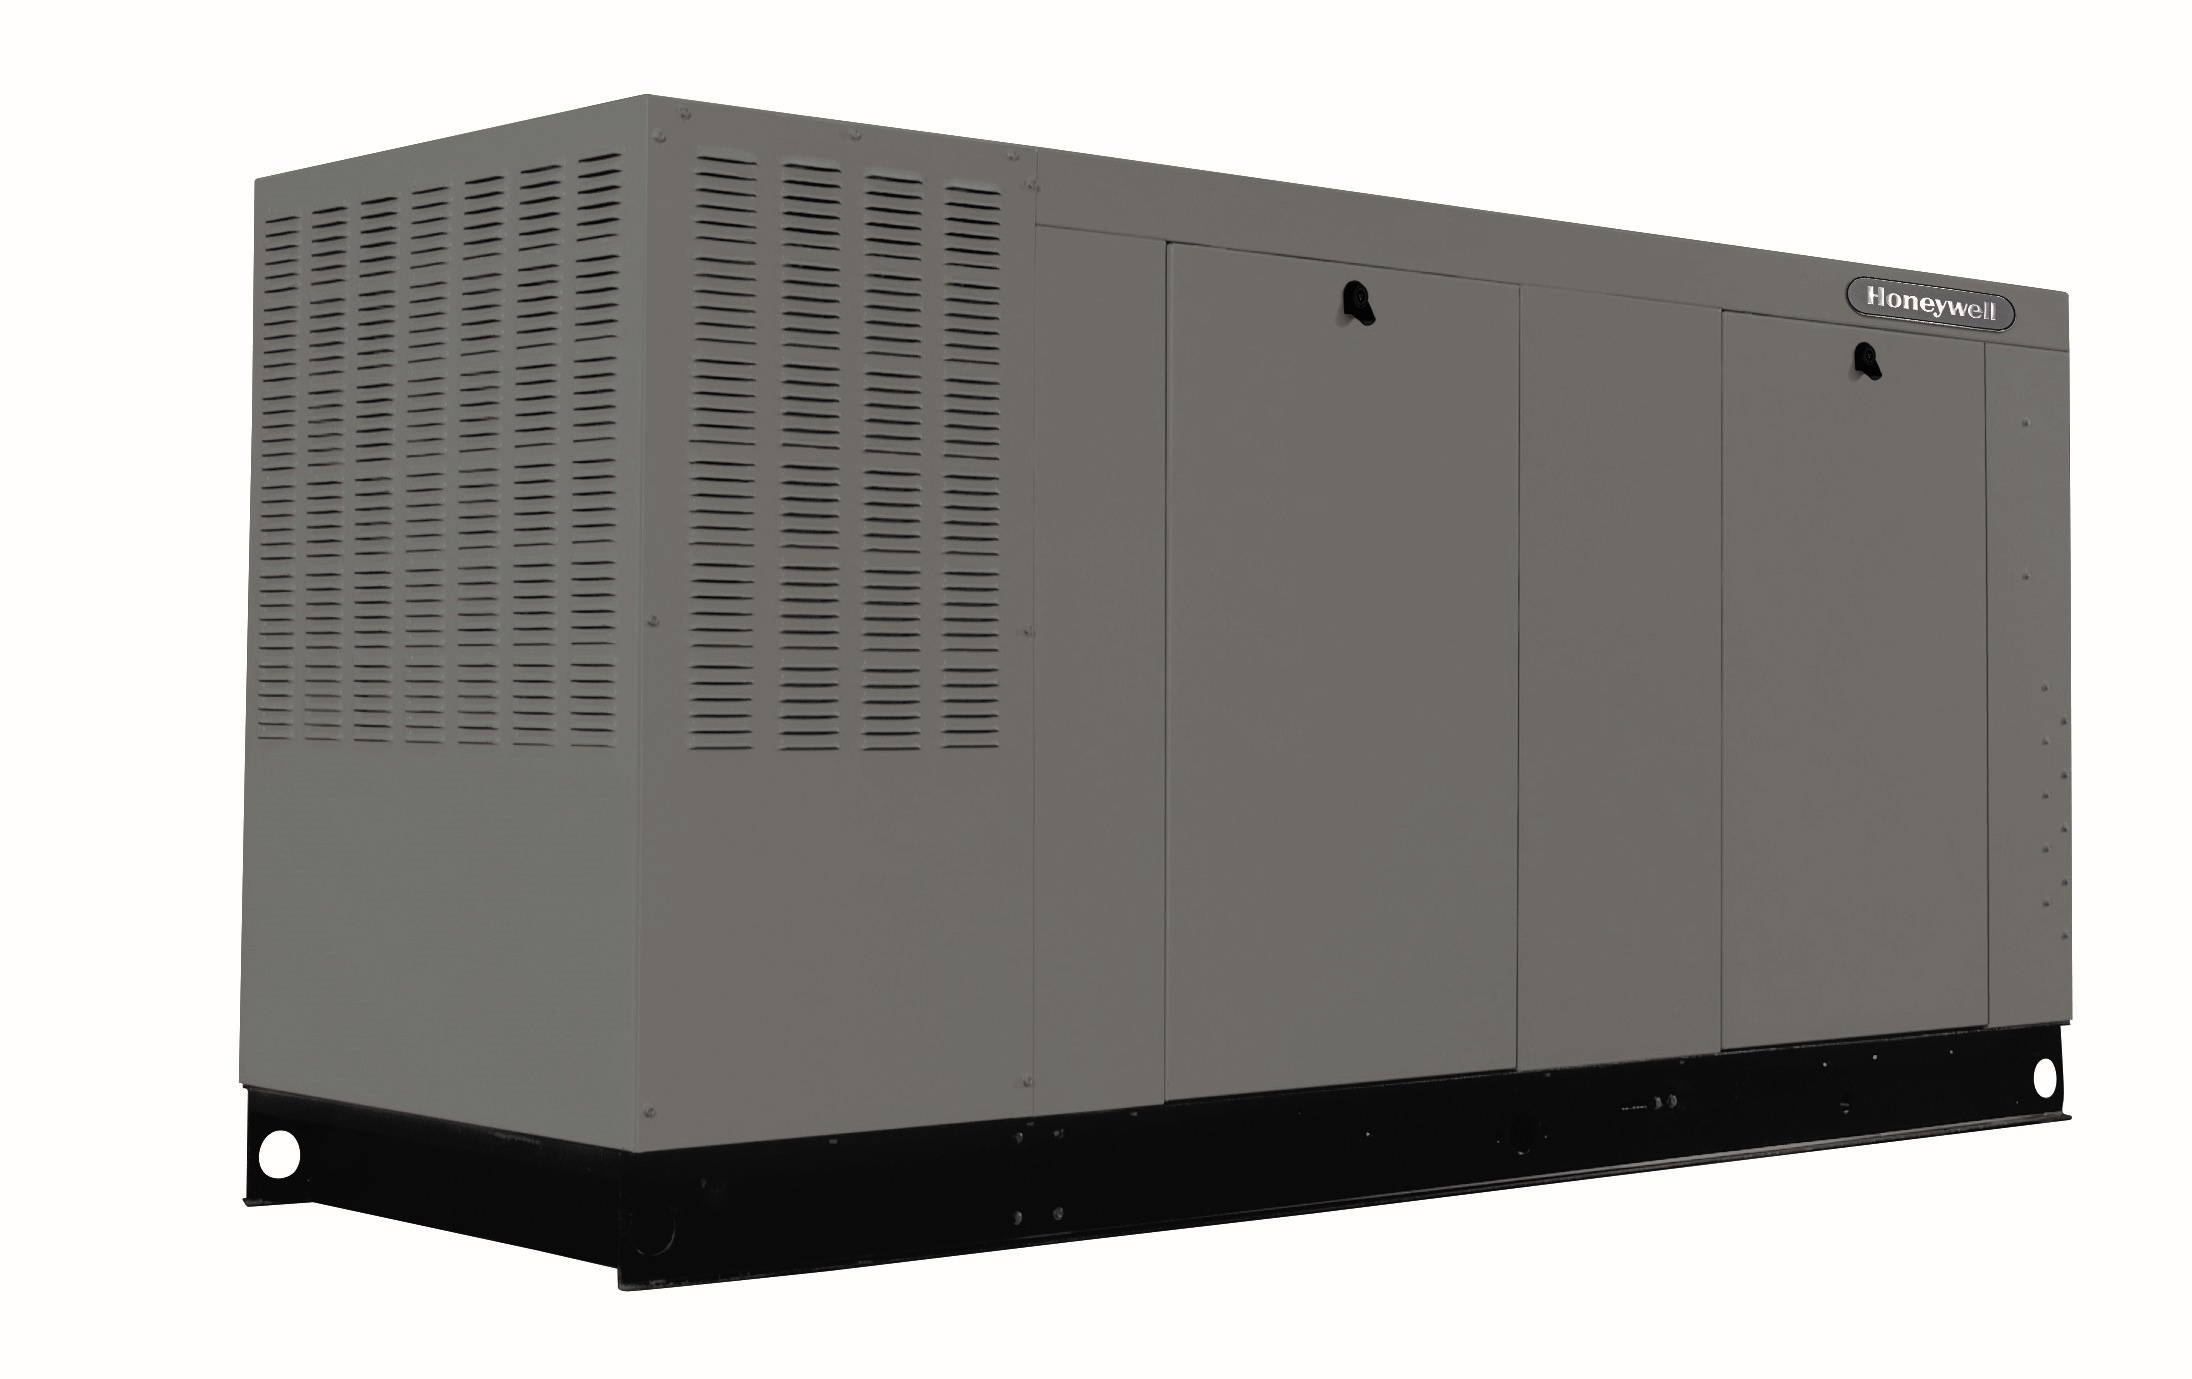 Honeywell 130kW Home Generator